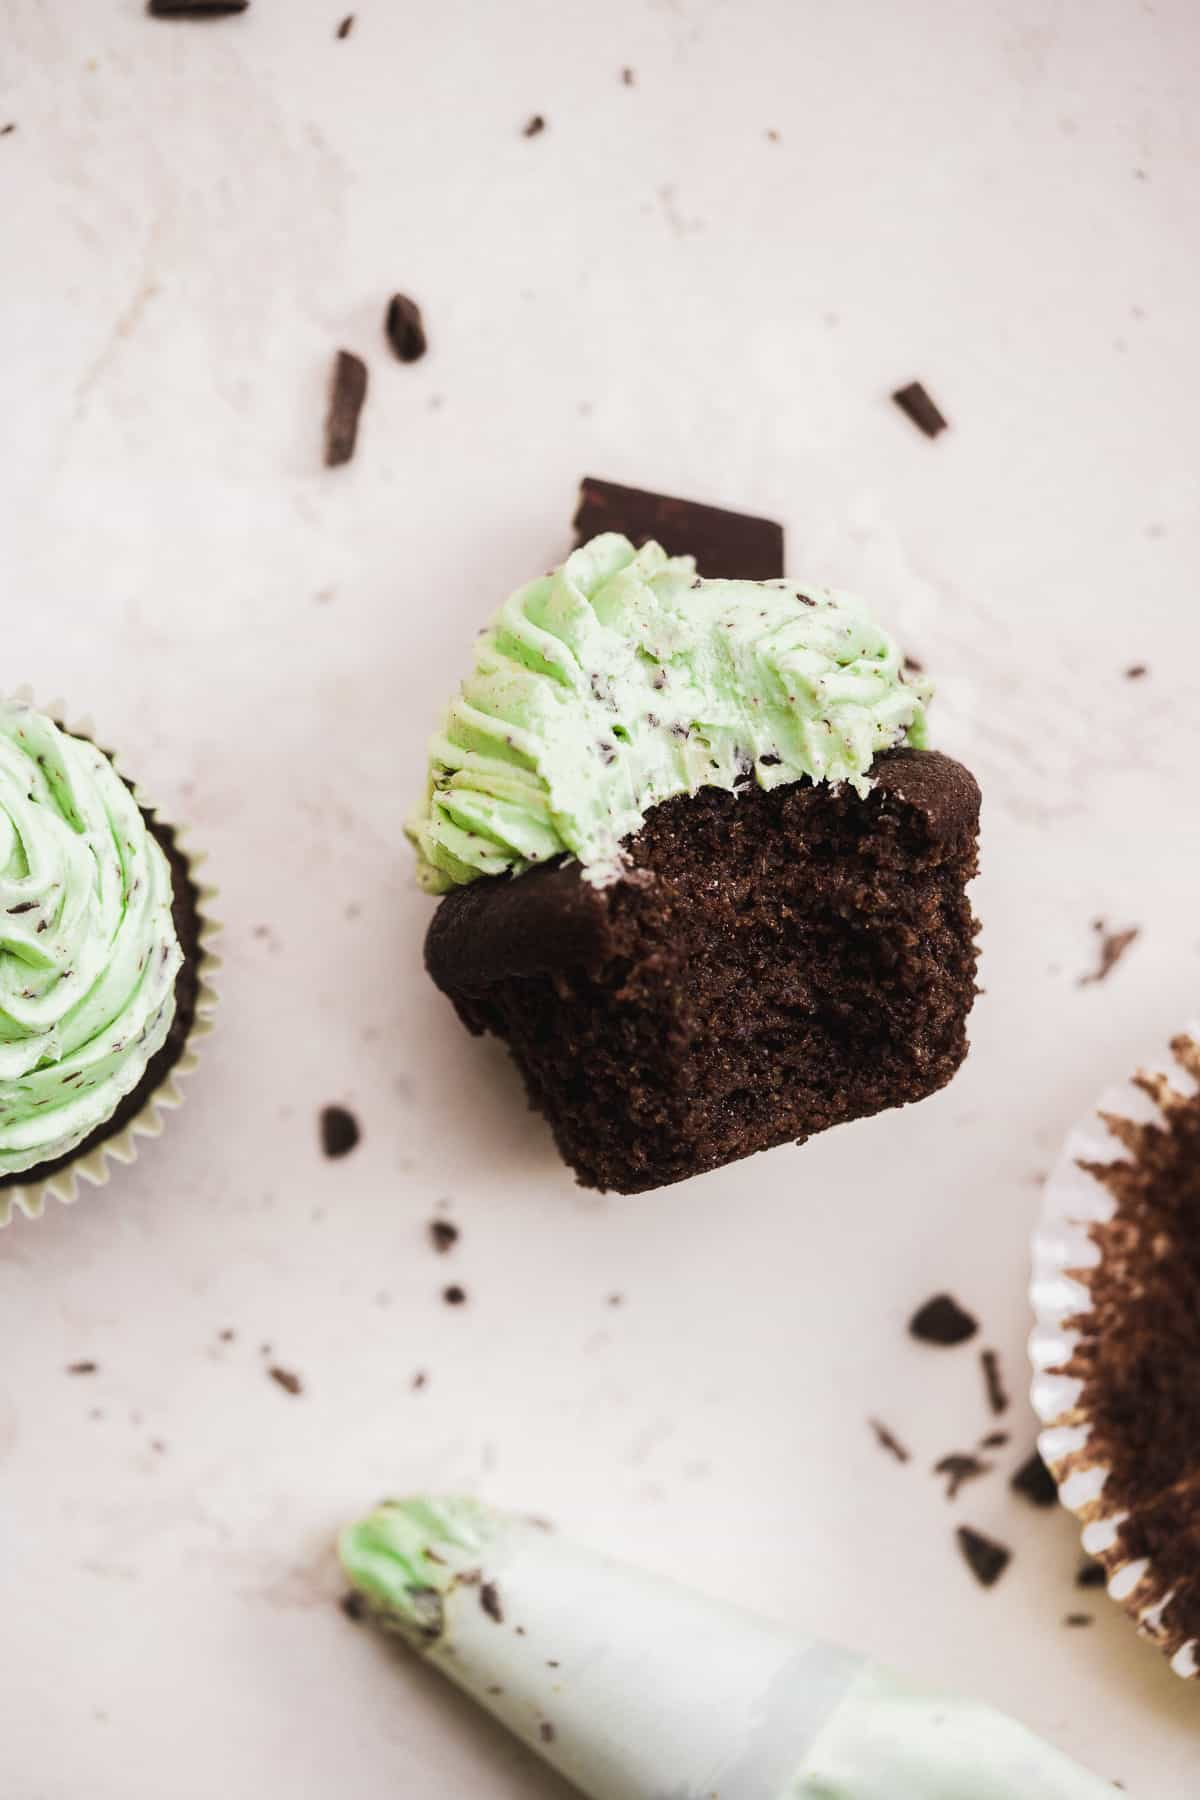 Image of a chocolate cupcake on a cream surface with a bite taken out of it and green frosting.